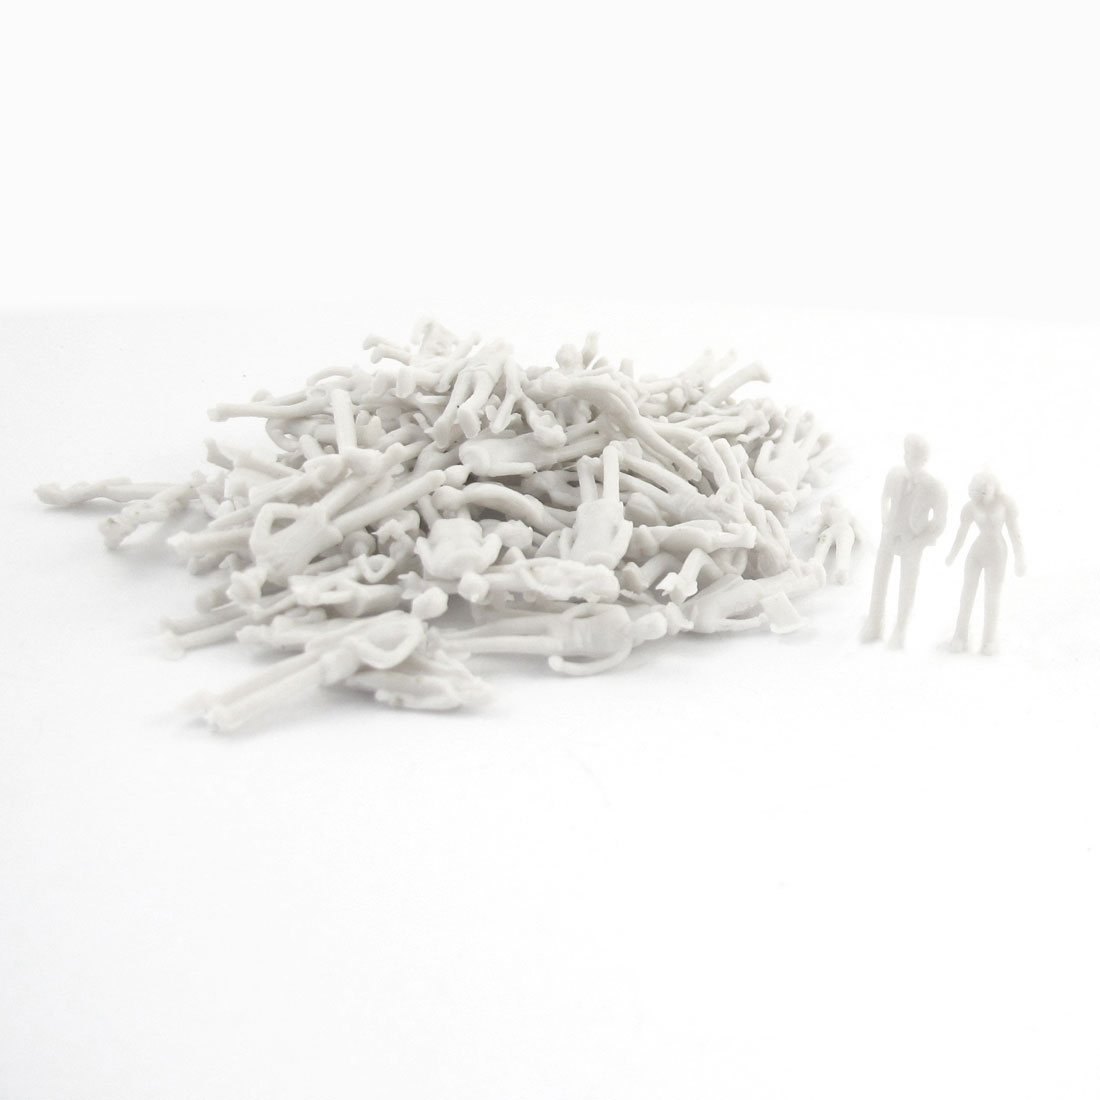 100pcs Unpainted Different Charaters Model People for Building Layout